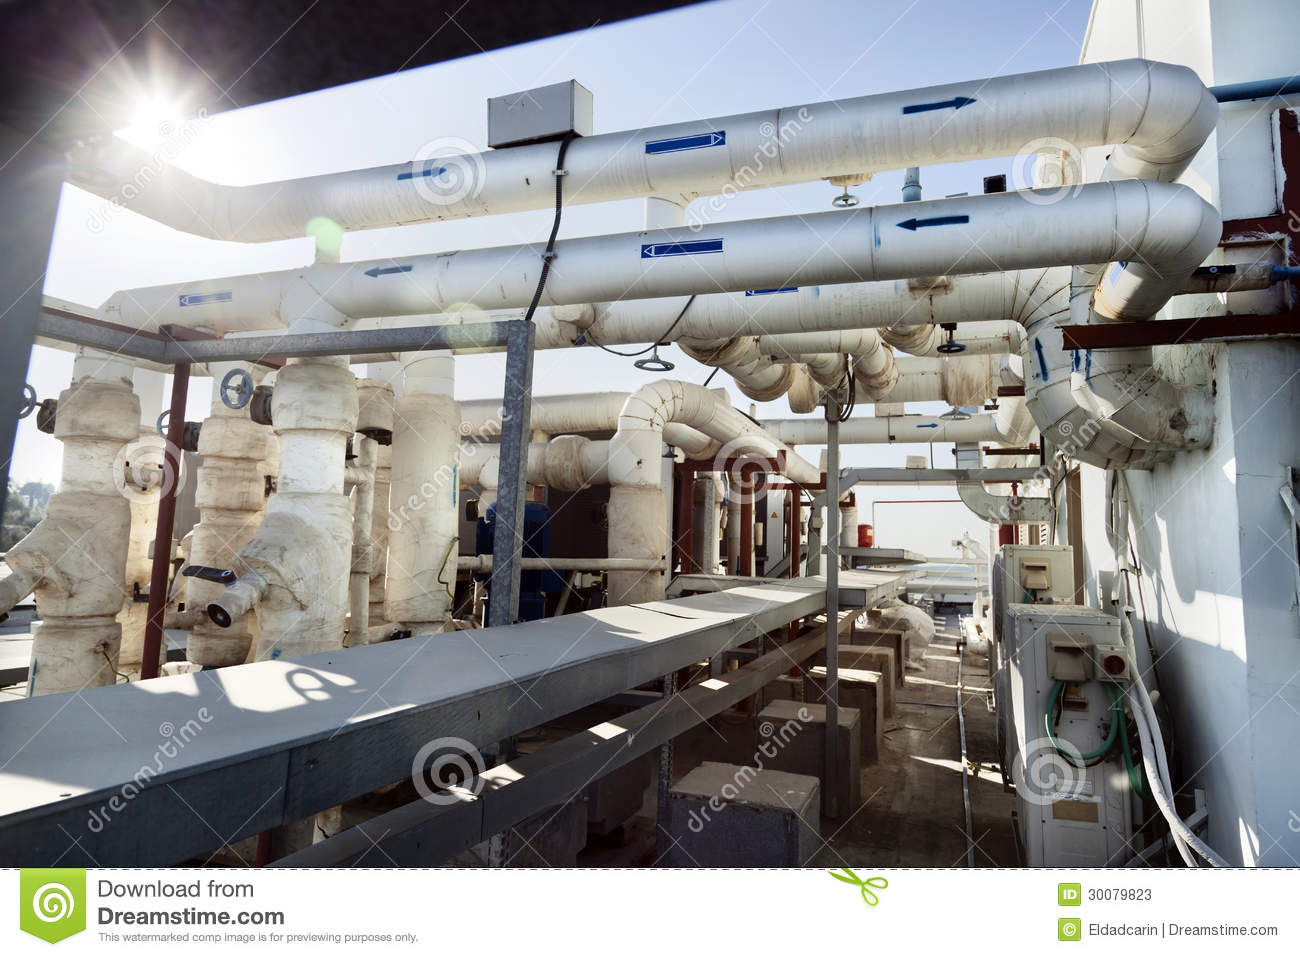 Water Building Material : Industrial rooftop pipes stock image of